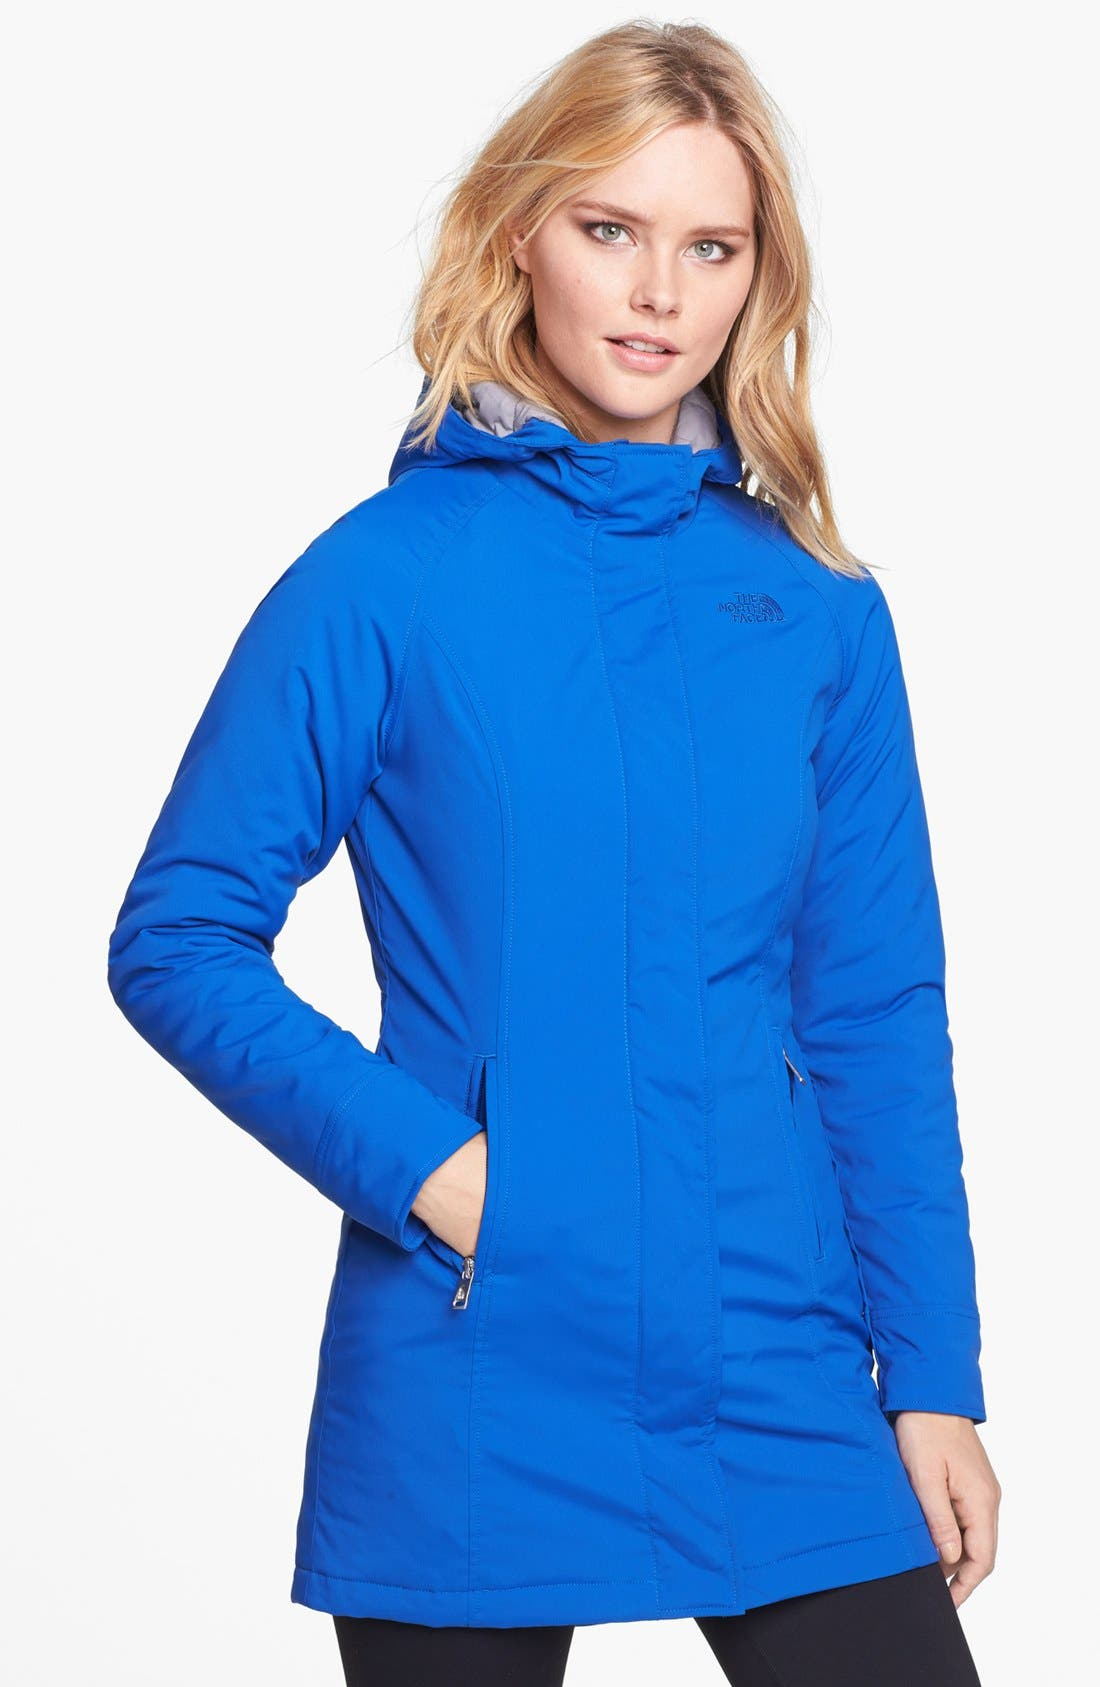 Alternate Image 1 Selected - The North Face 'Lola' Soft Shell Trench Coat